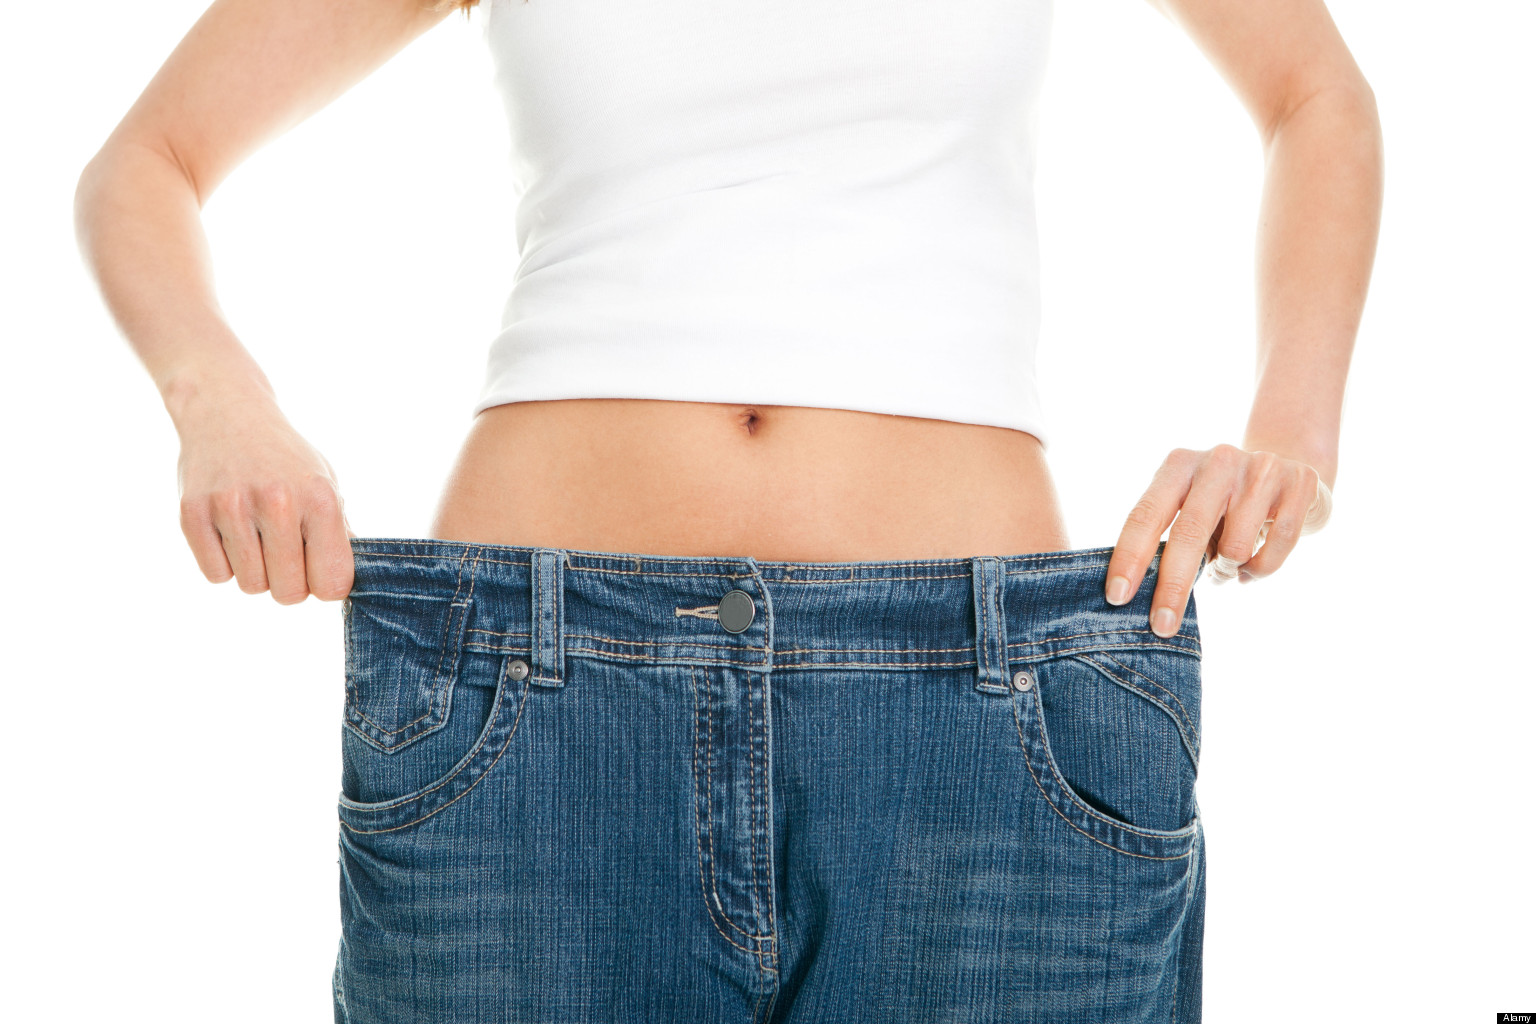 Achieving Weight Loss through Body Piercing